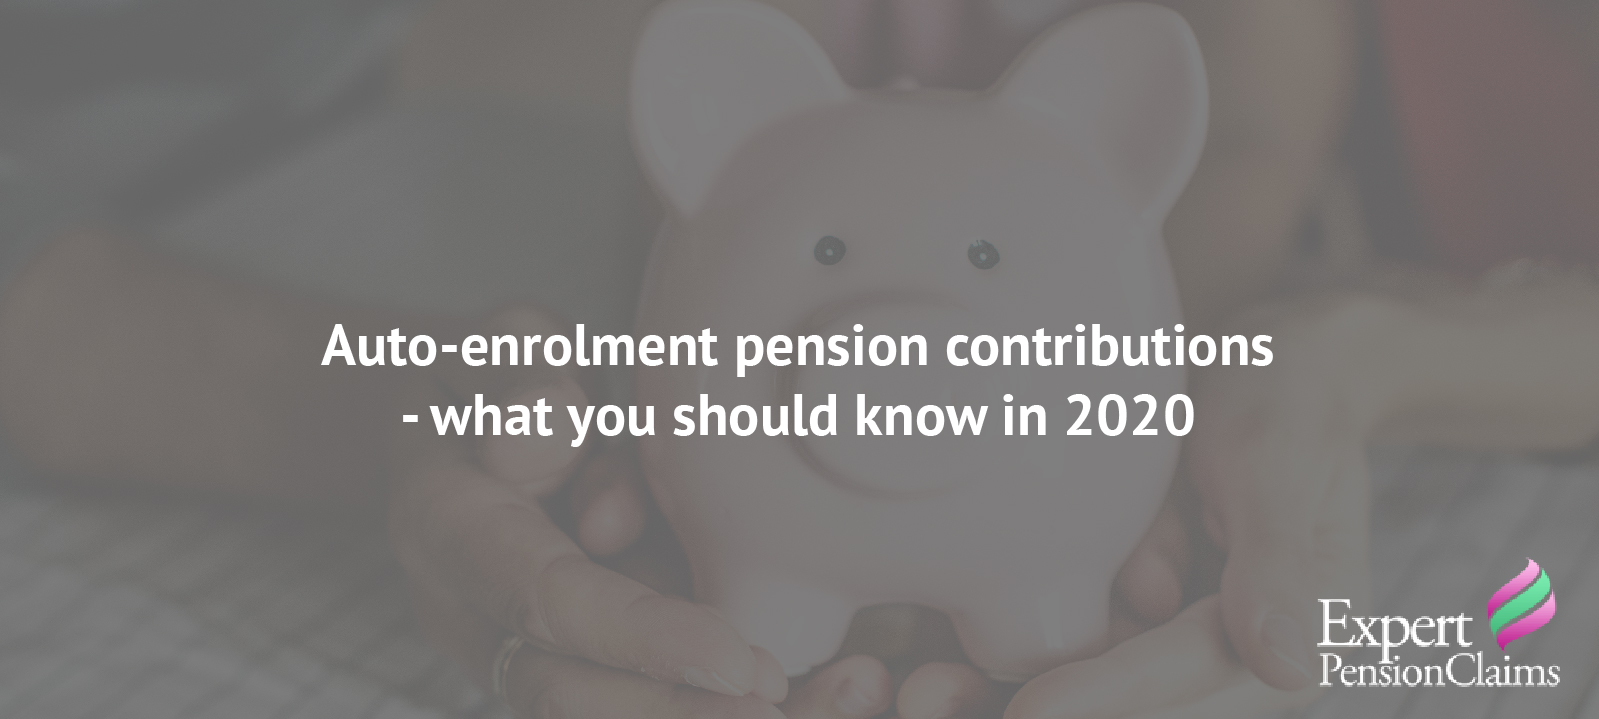 Auto-enrolment pension contributions – what you should know in 2020